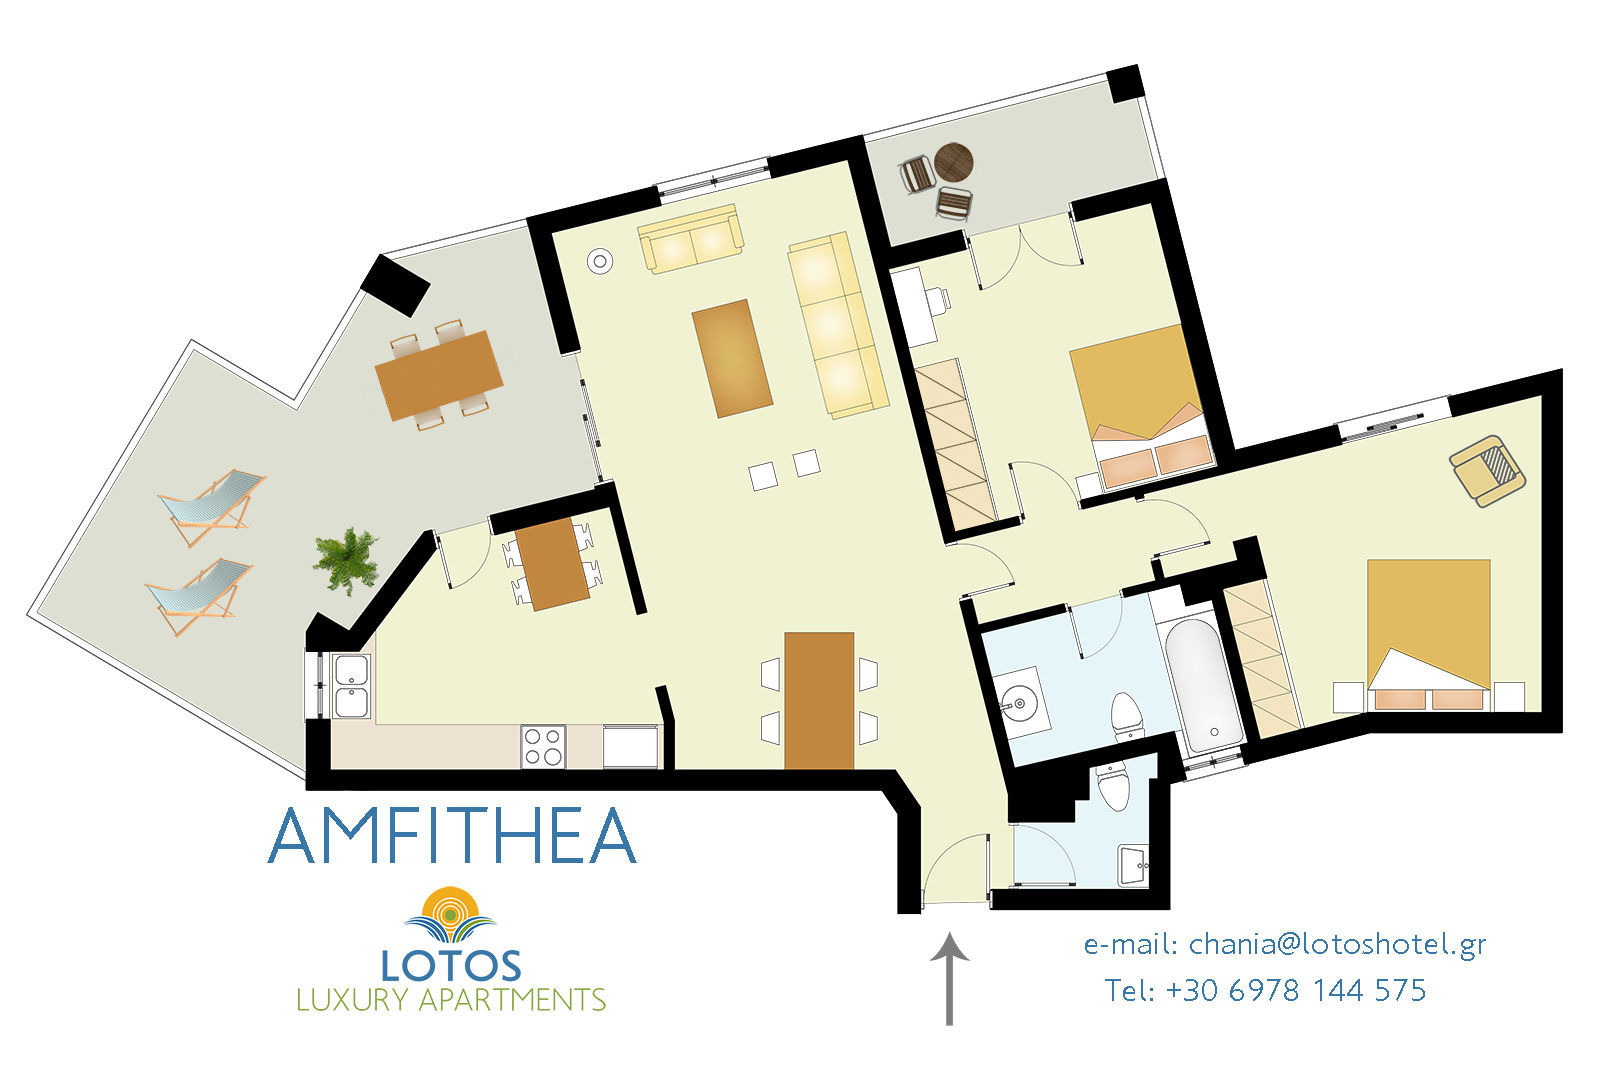 AMFITHEA apartment Floor Plan